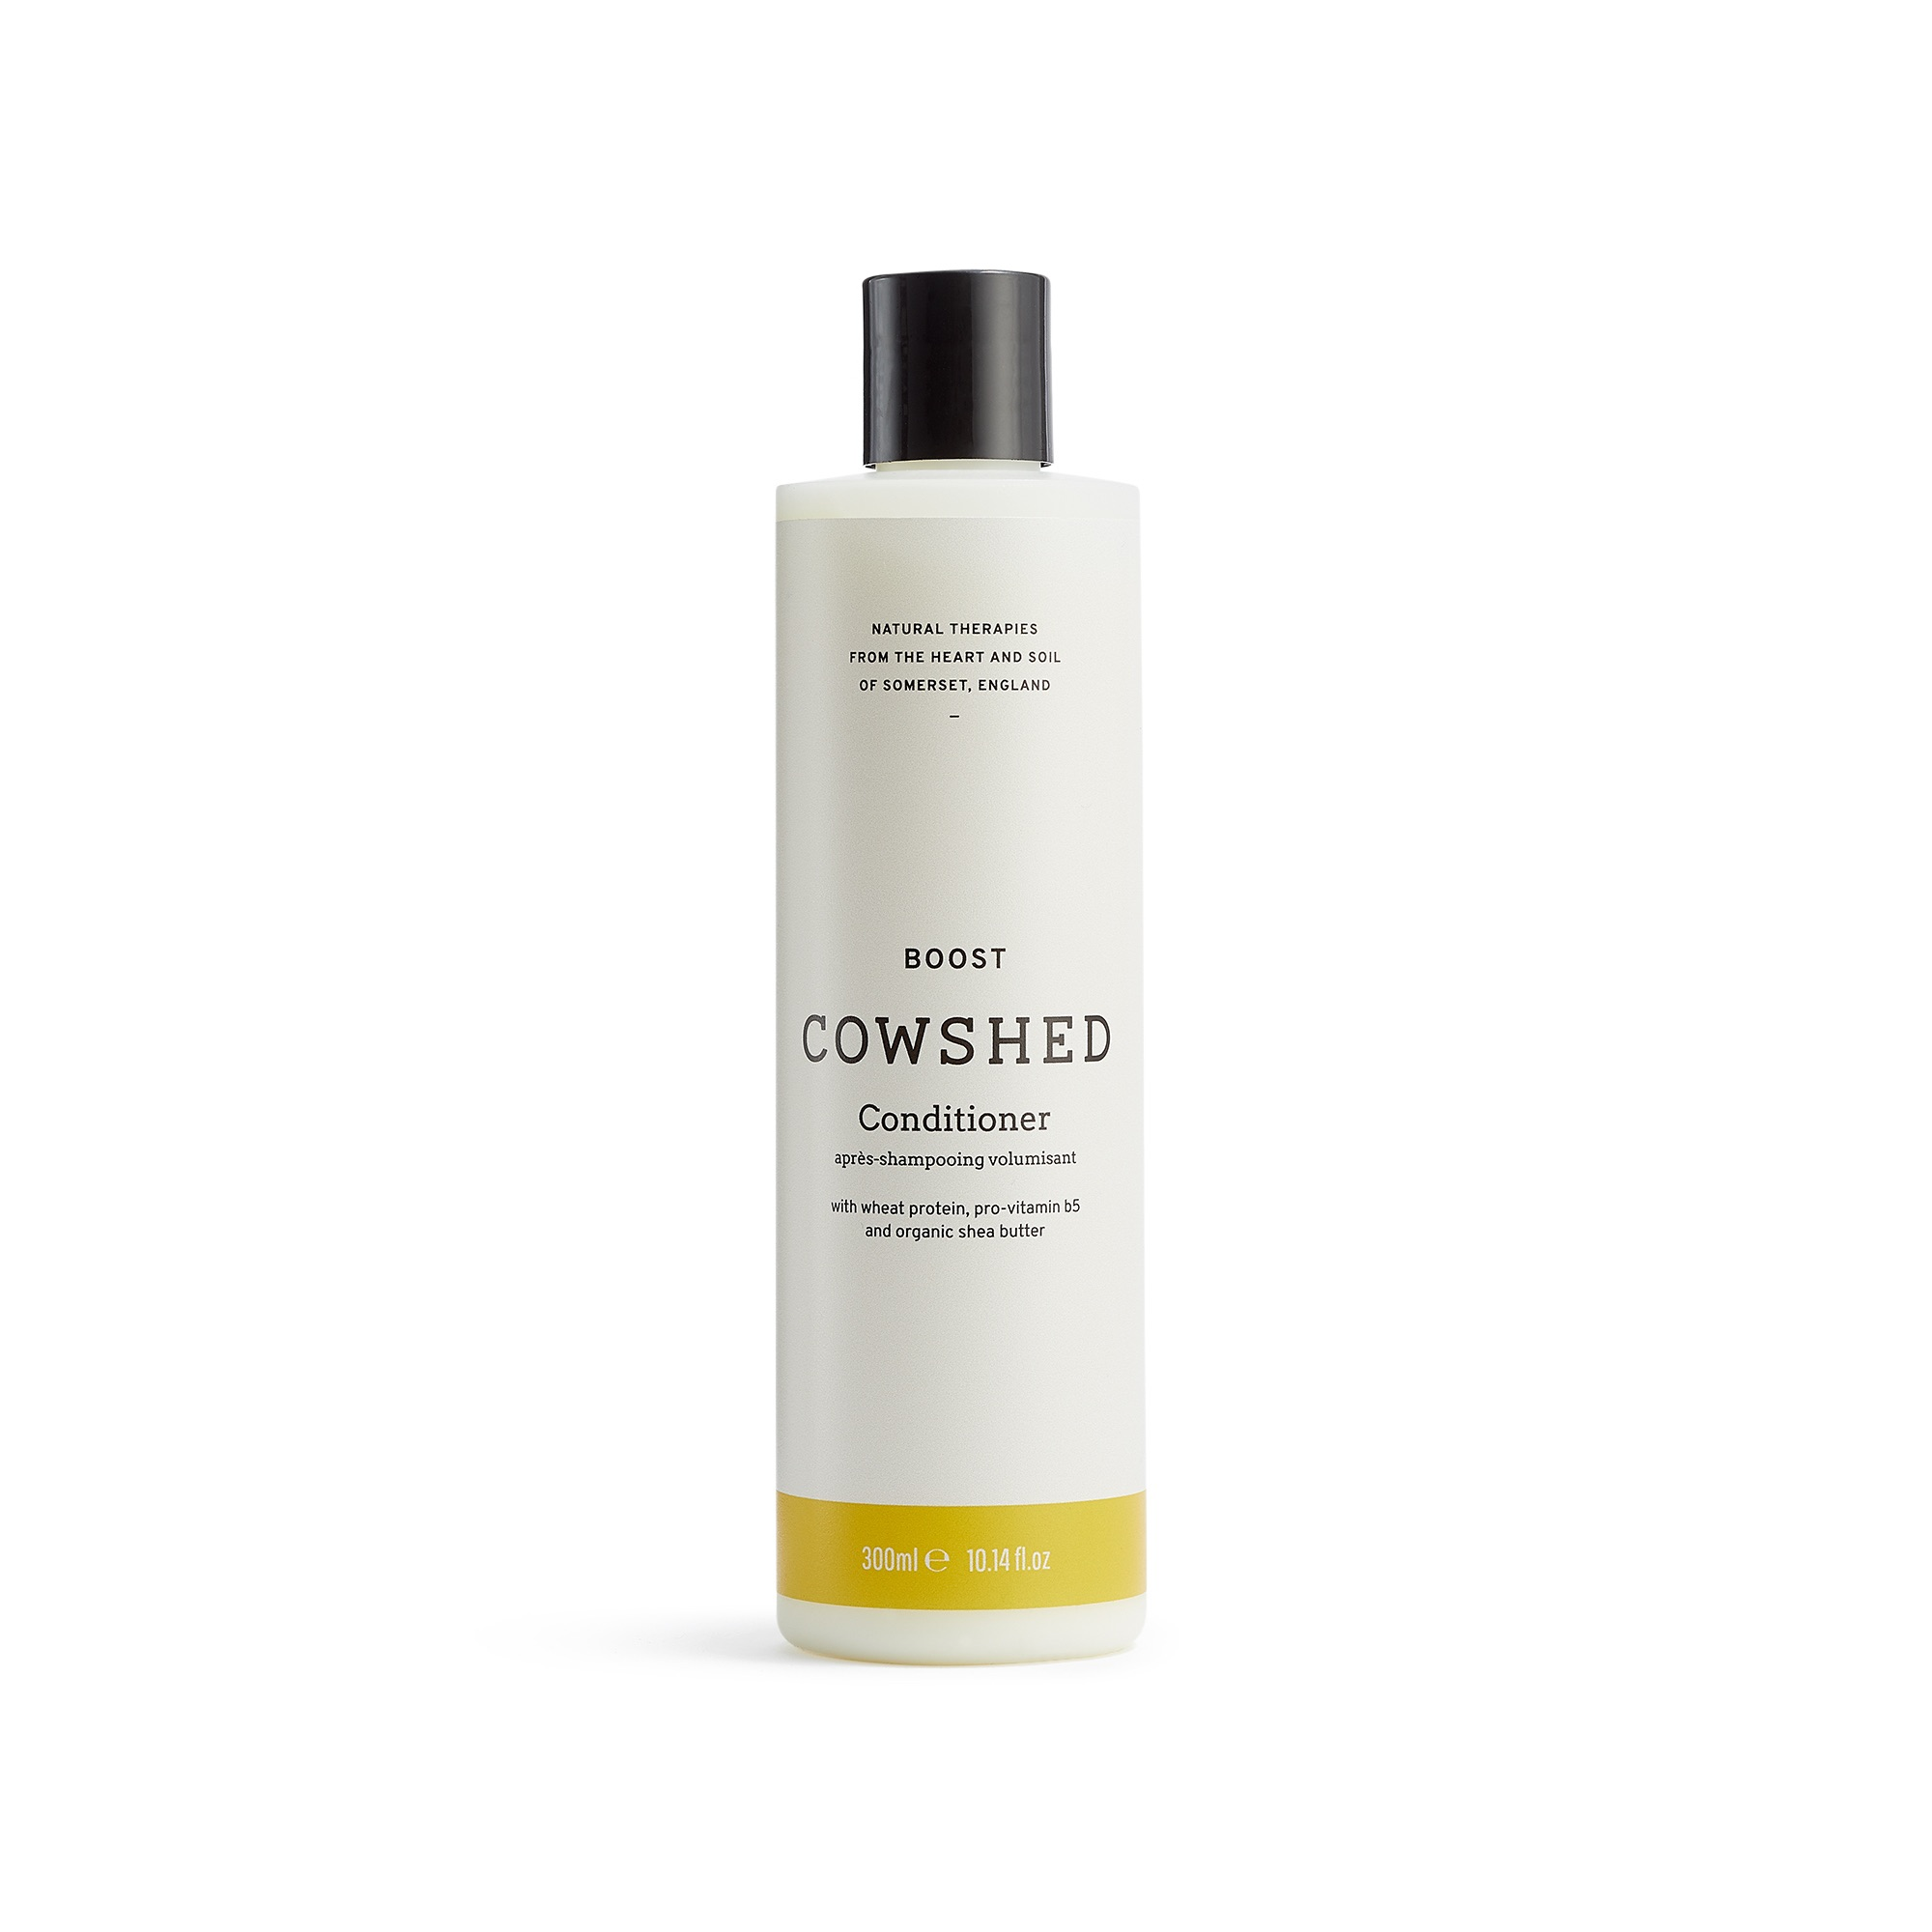 Cowshed BOOST Conditioner (Grumpy Cow Volumising Conditioner) 300ml